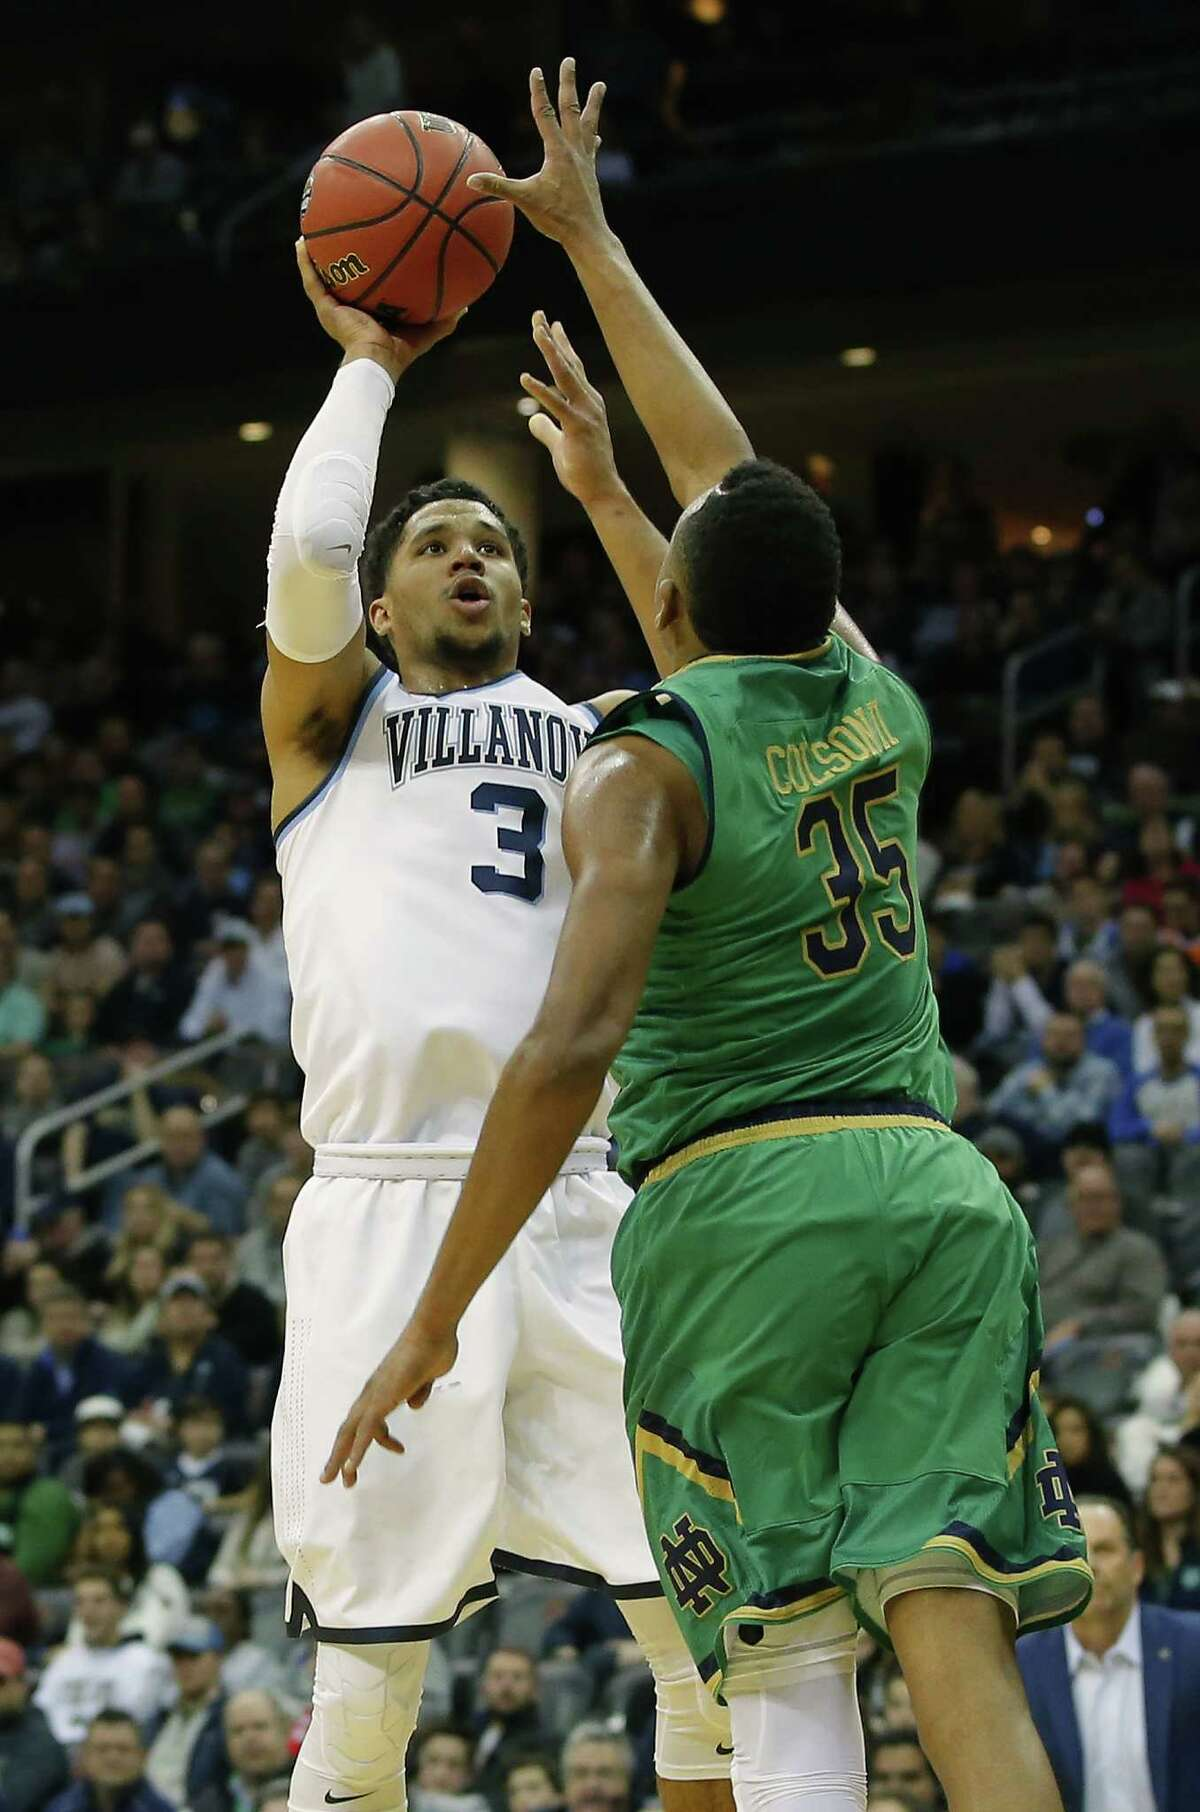 Villanova's Josh Hart hoists a shot over Notre Dame's Bonzie Colson during the first half Saturday. He was 10-of-14 from the field and even better when he was standing still, hitting all 14 of his free-throw attempts.